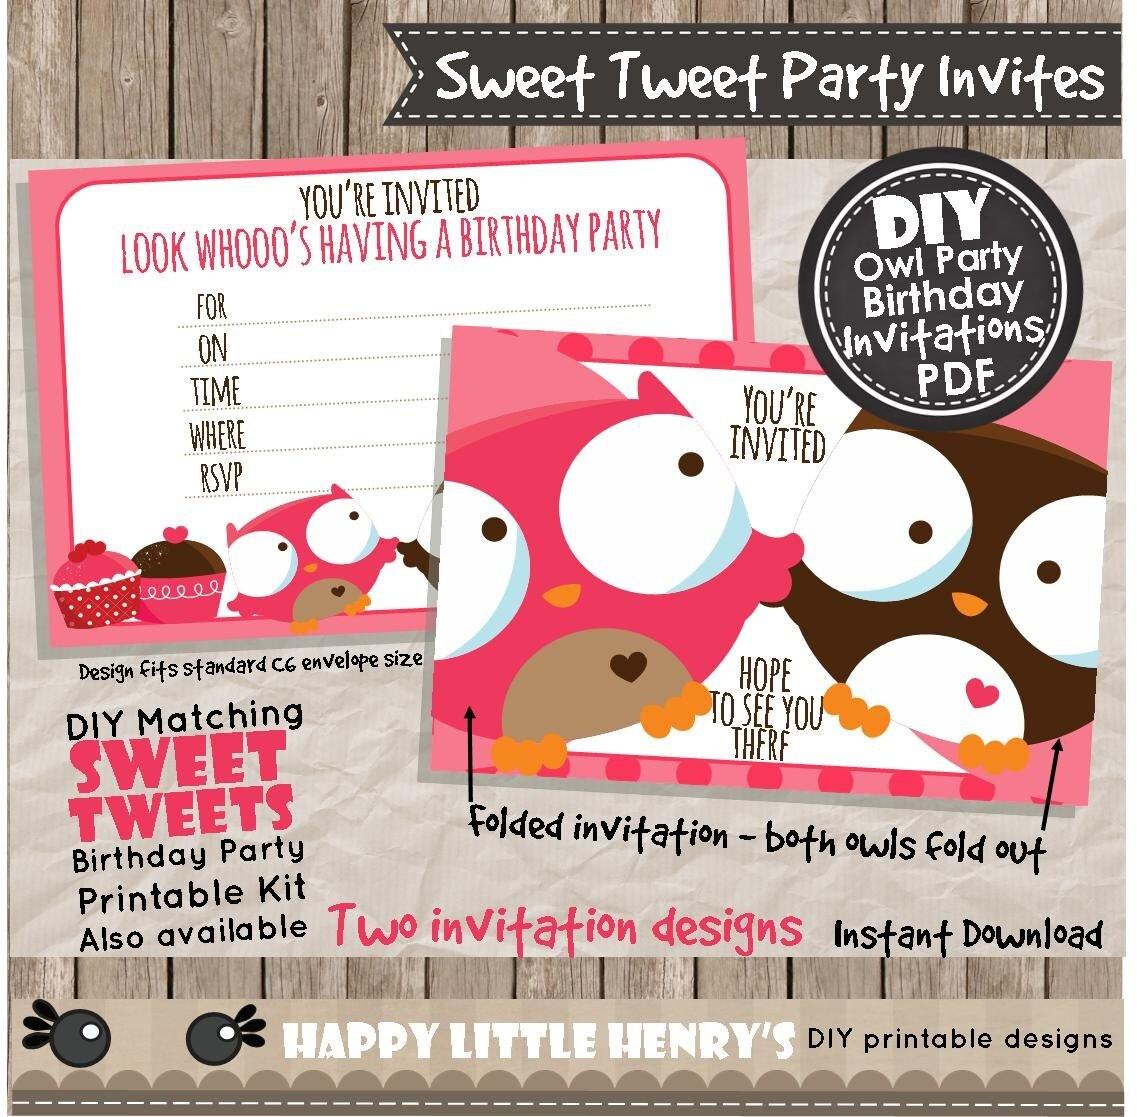 OWL PARTY INVITATIONS - Instant Download pdf - birthday invite ...